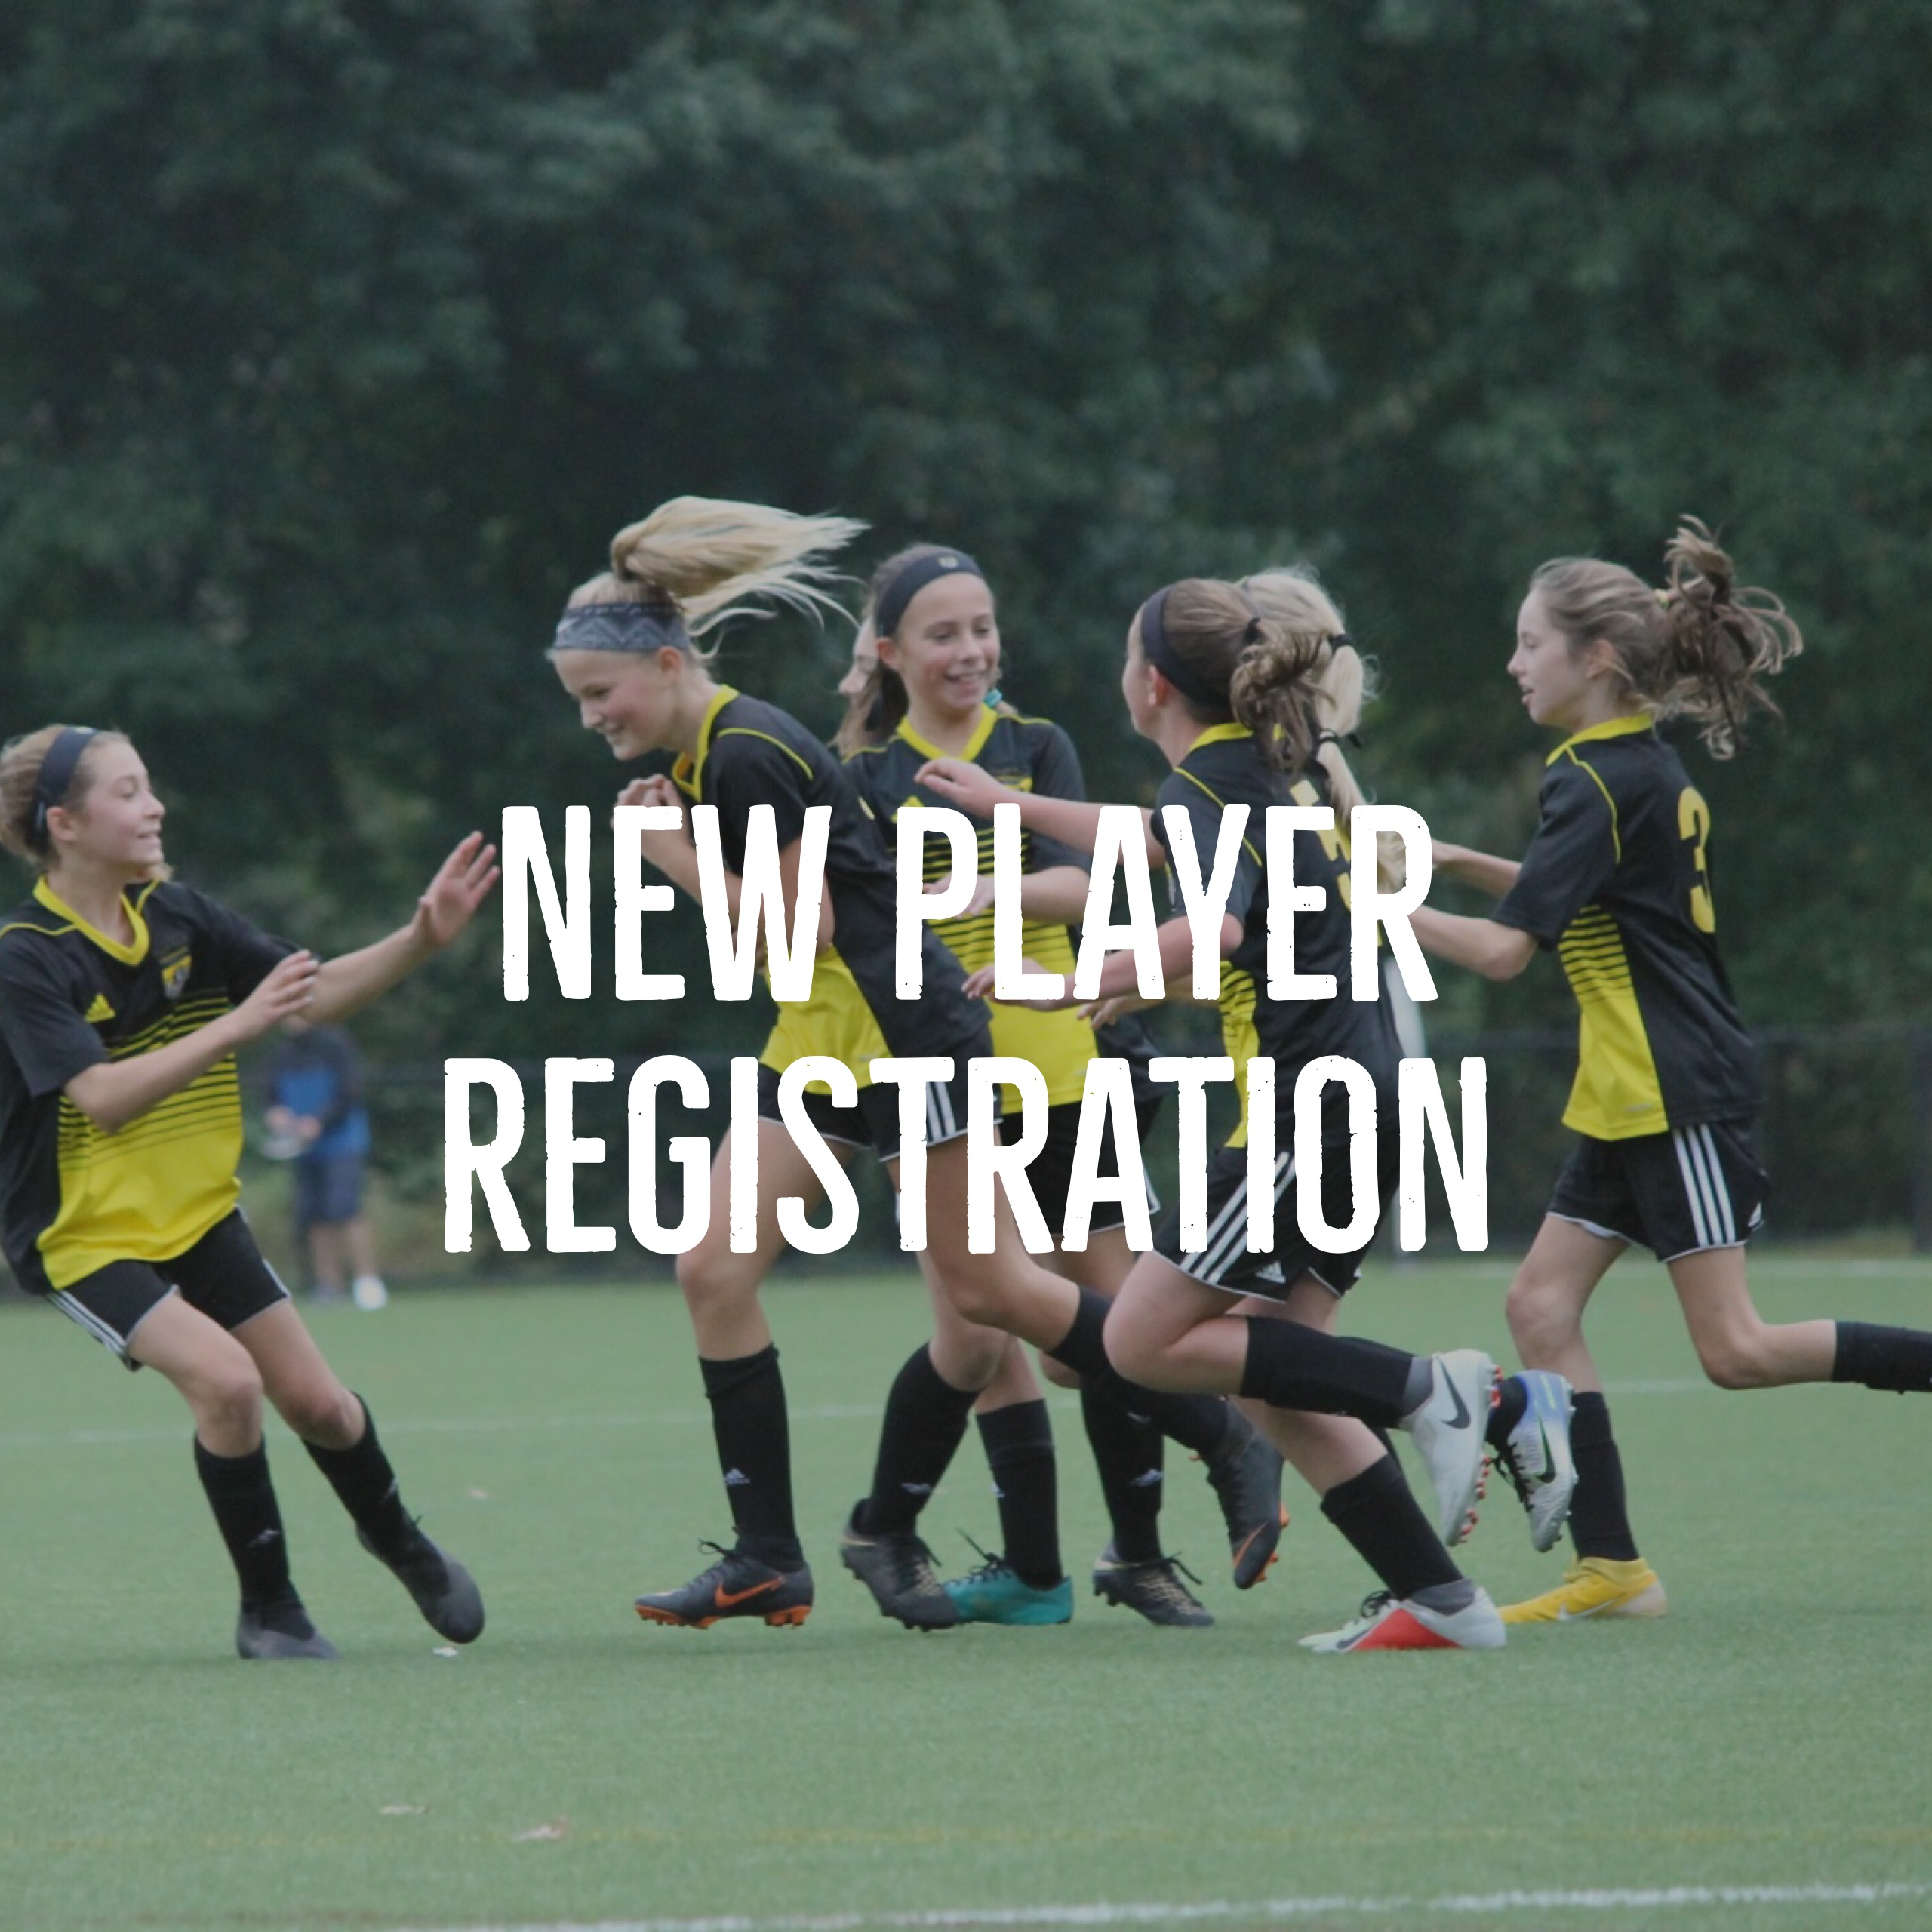 New Player Registration